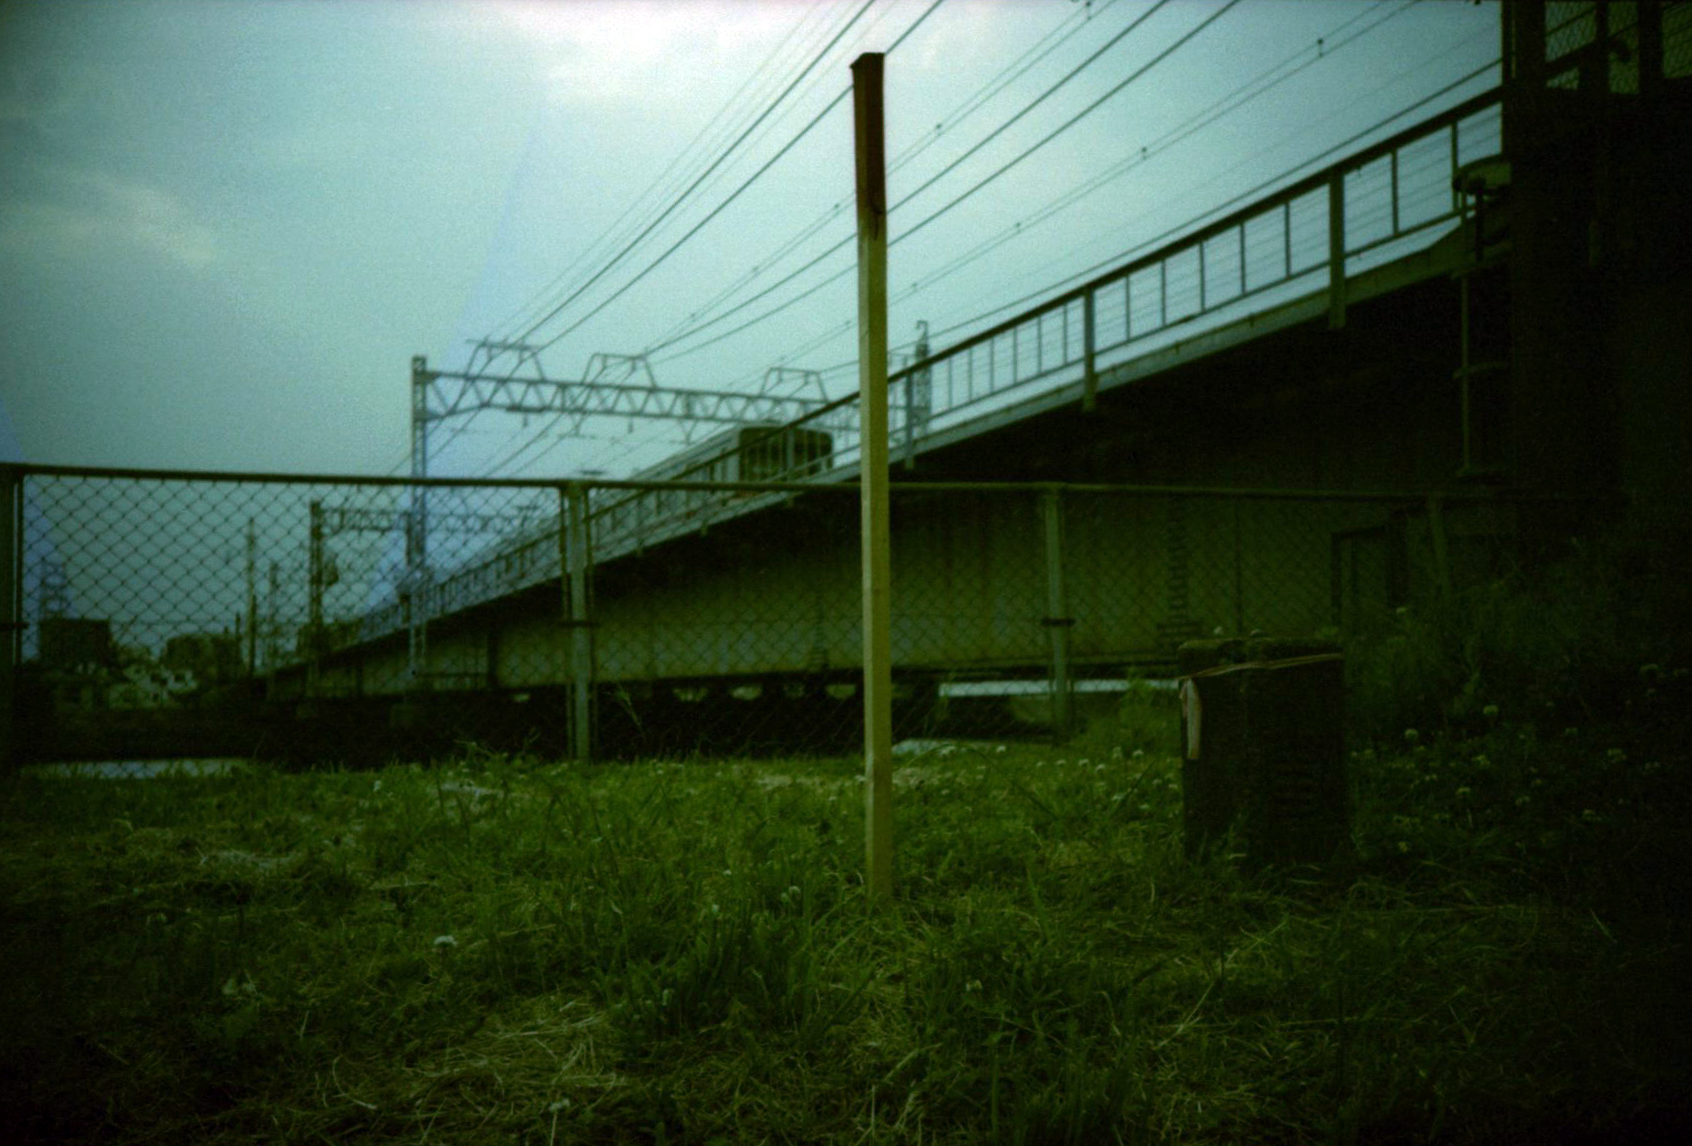 20130516 LomoLC-A RDP3 CrossProcess 032